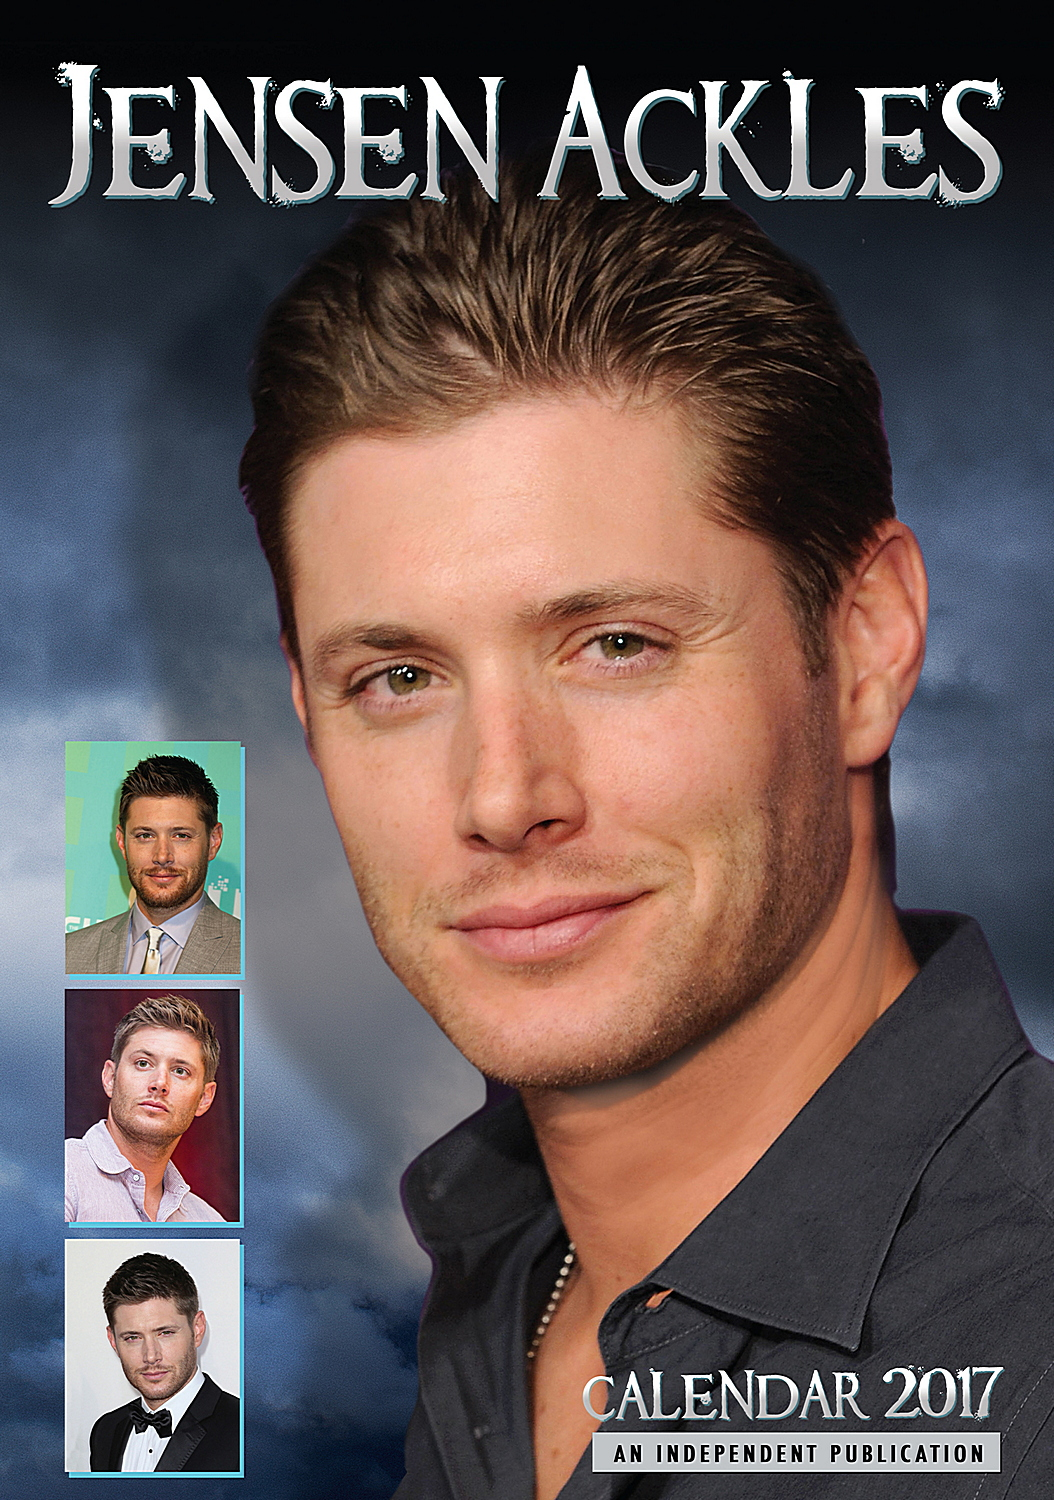 Jensen Ackles Celebrity Wall Calendar 2017 | Celebrity ...